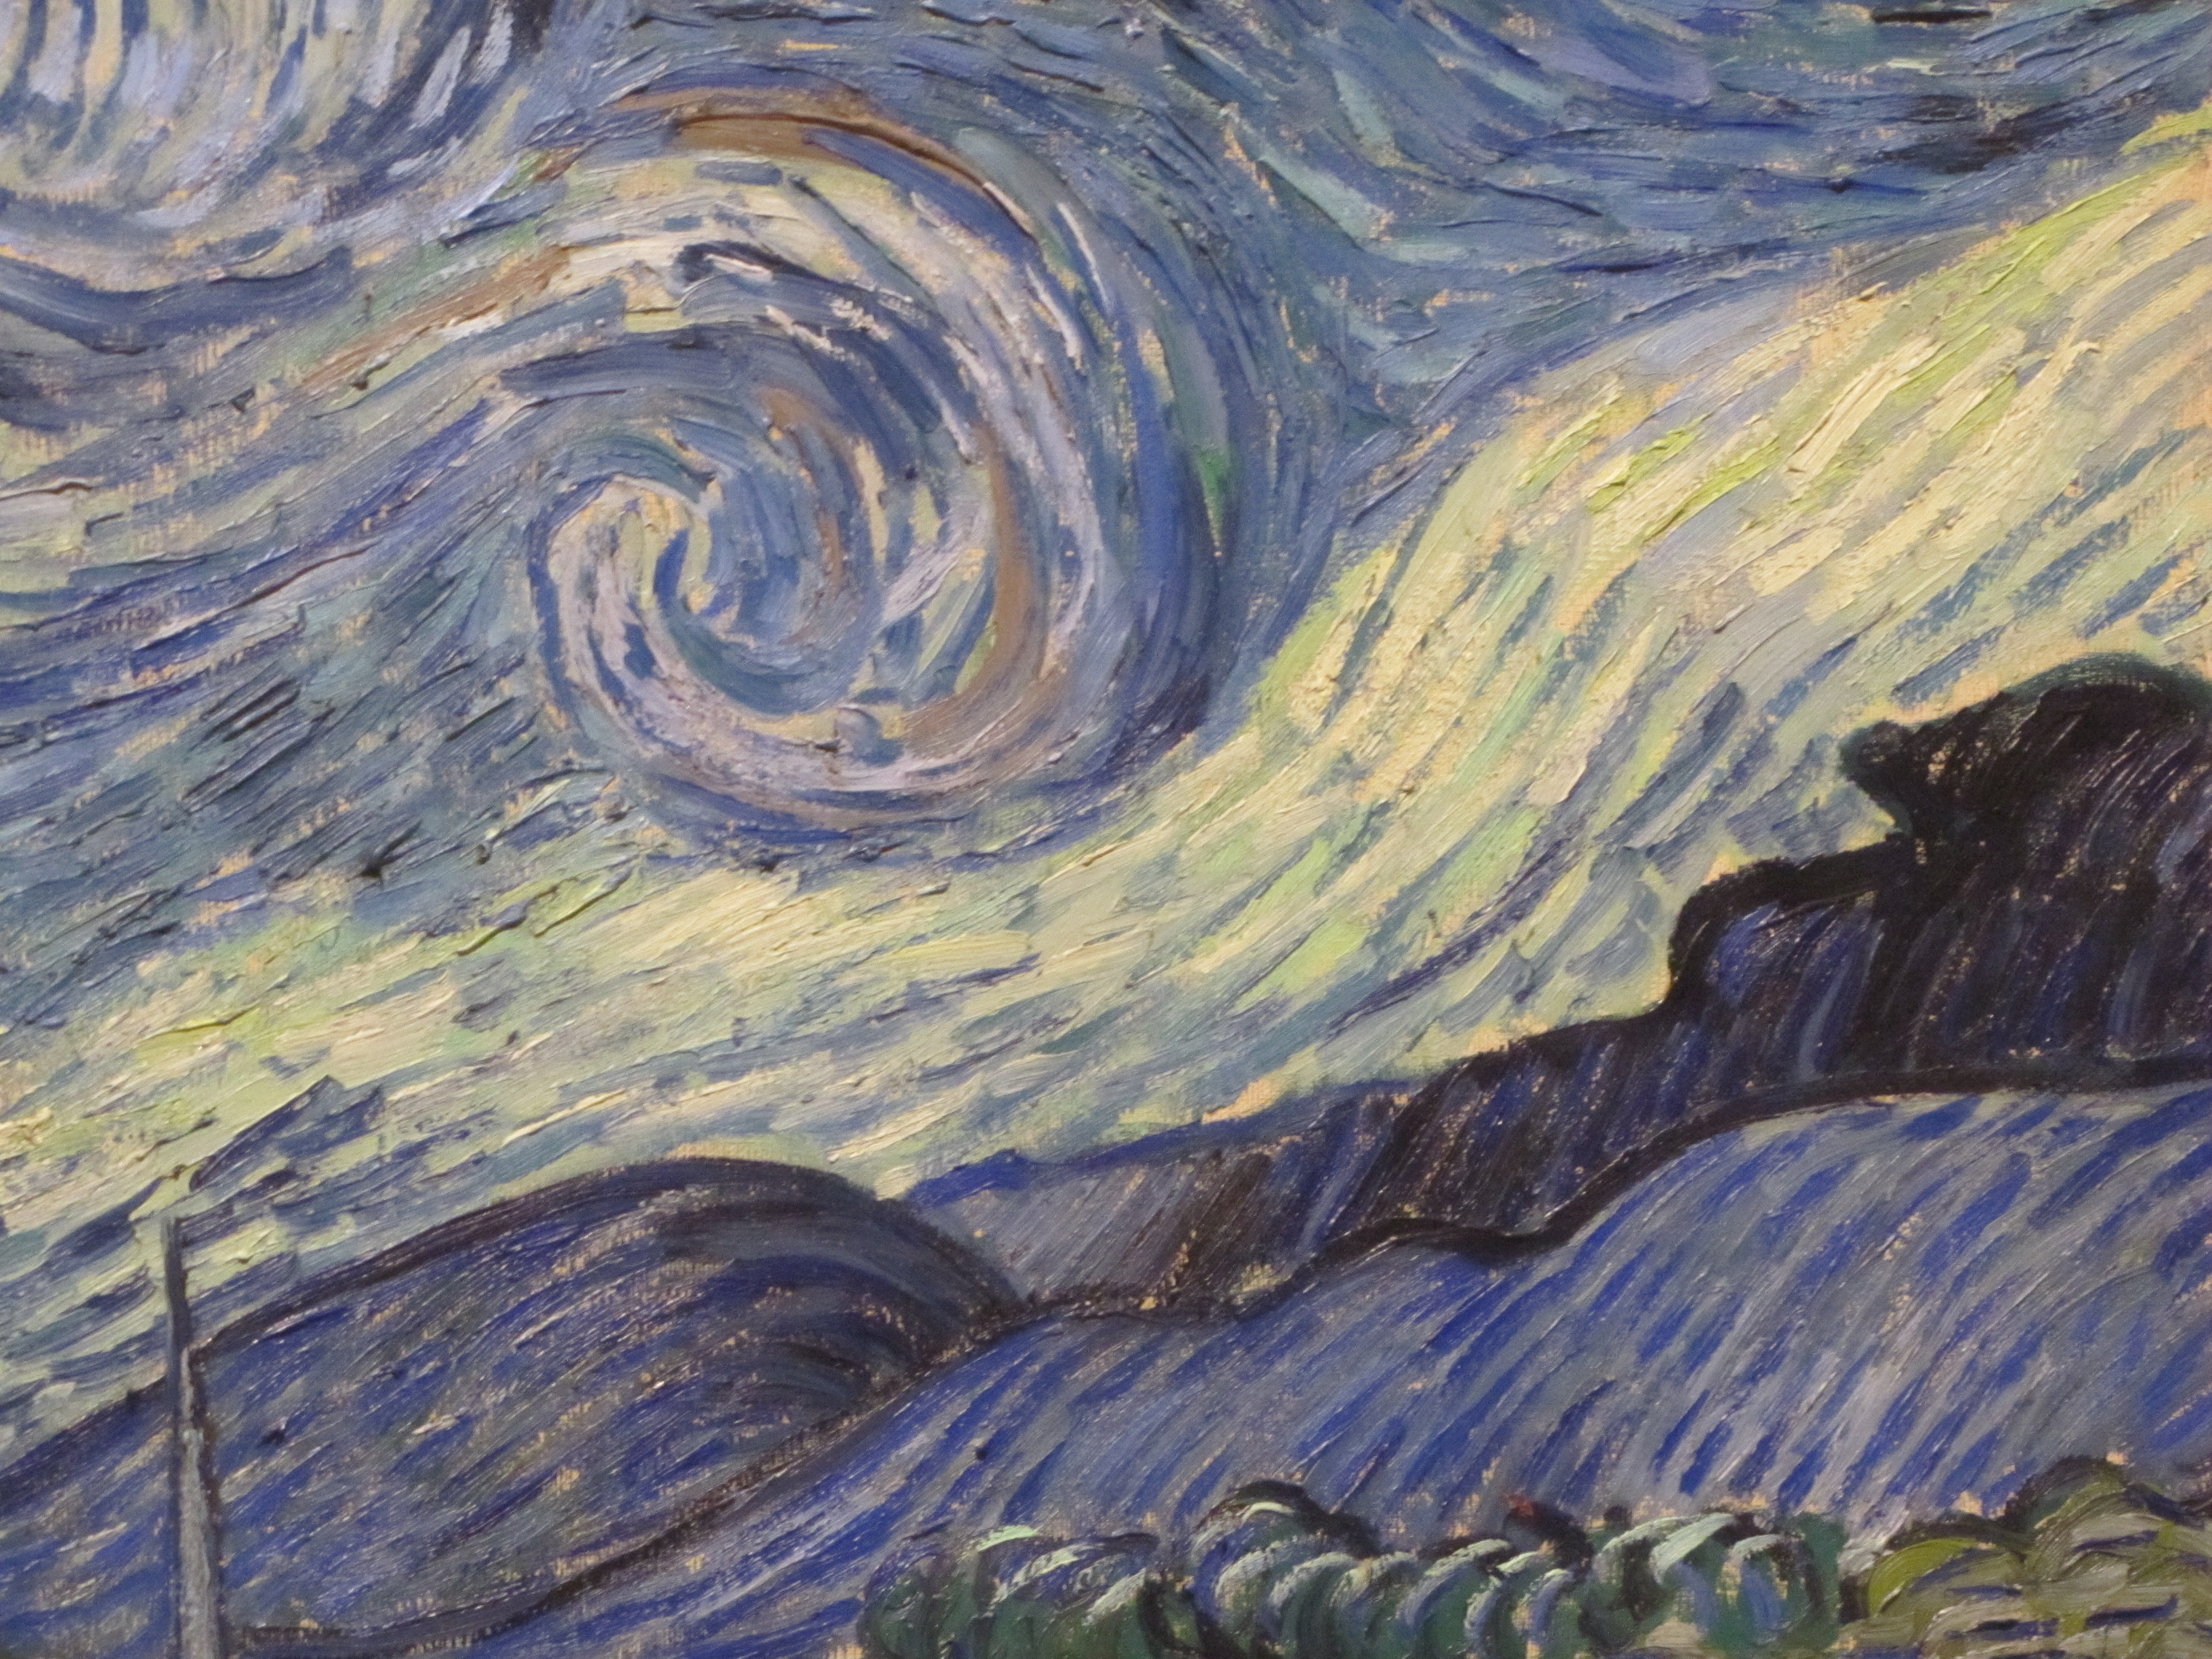 Afbeeldingsresultaat voor Van Gogh //  mountain night road painting //  hills and sky